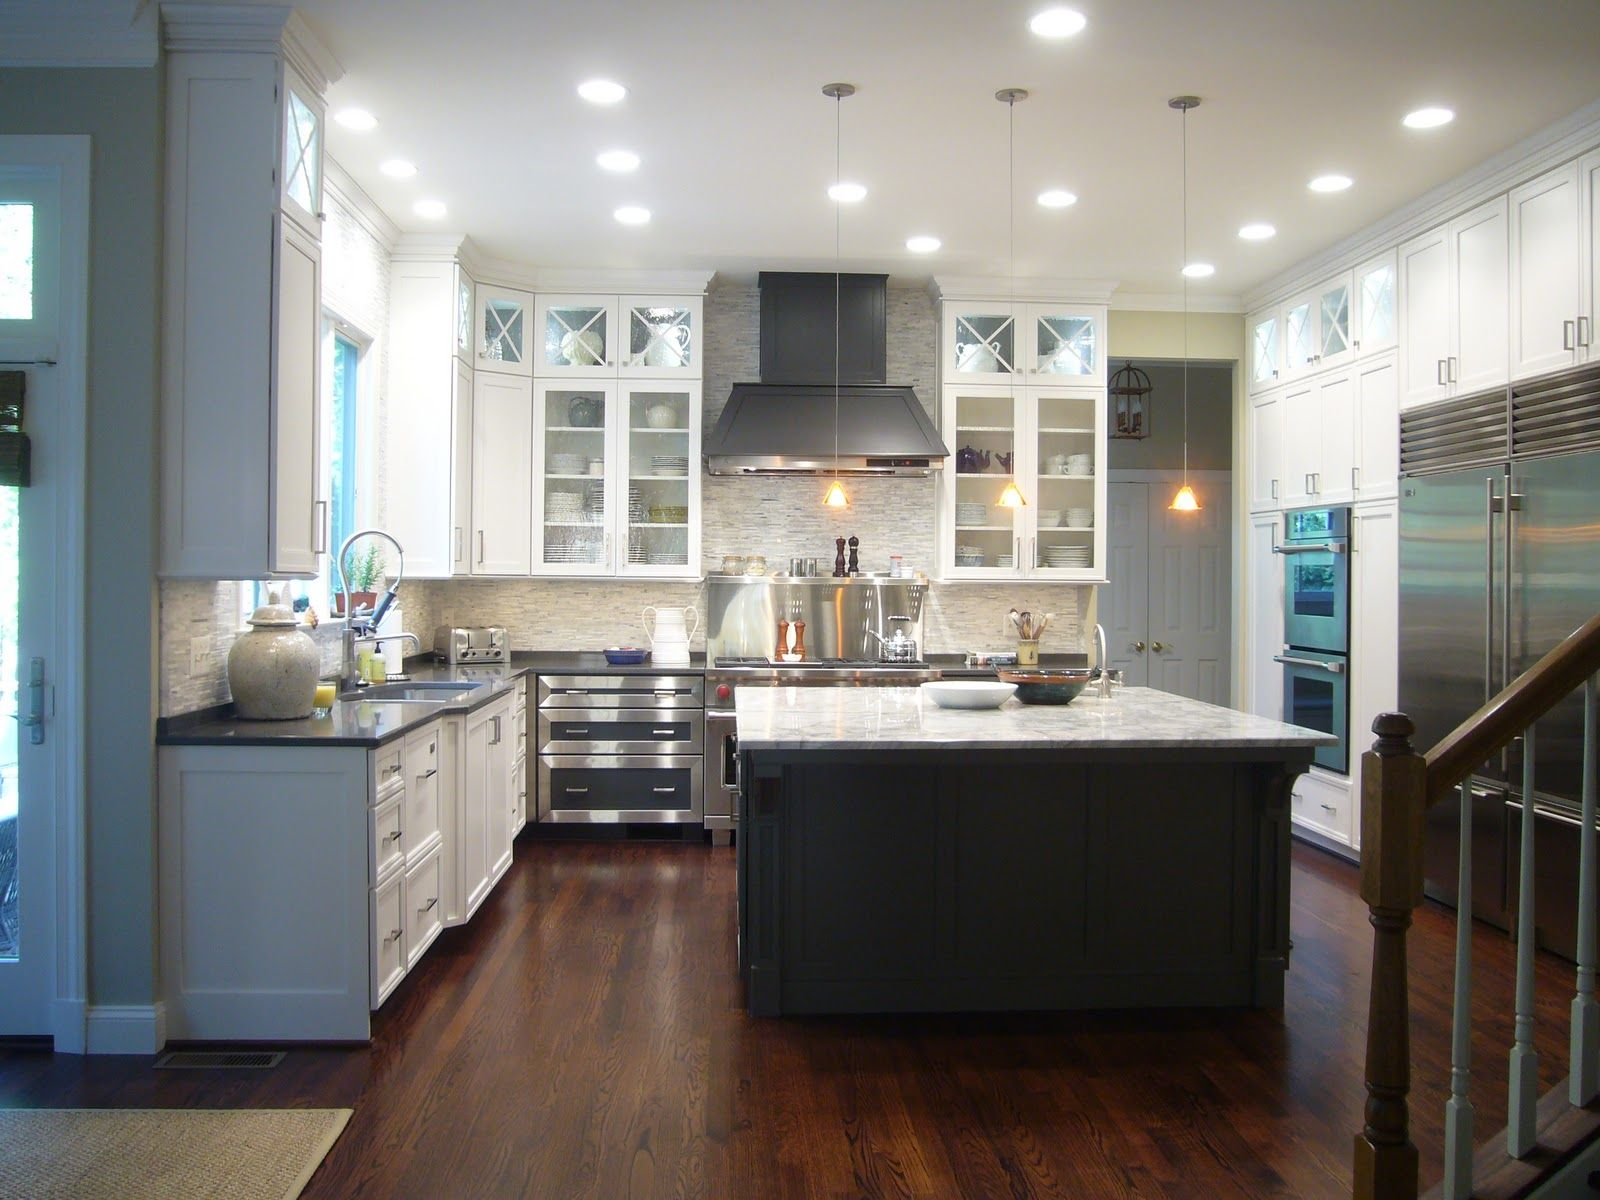 Rabbit Runn Designs A Kitchen Makeover: White Perimeter Cabinets, BM Kendall Charcoal Island, Love